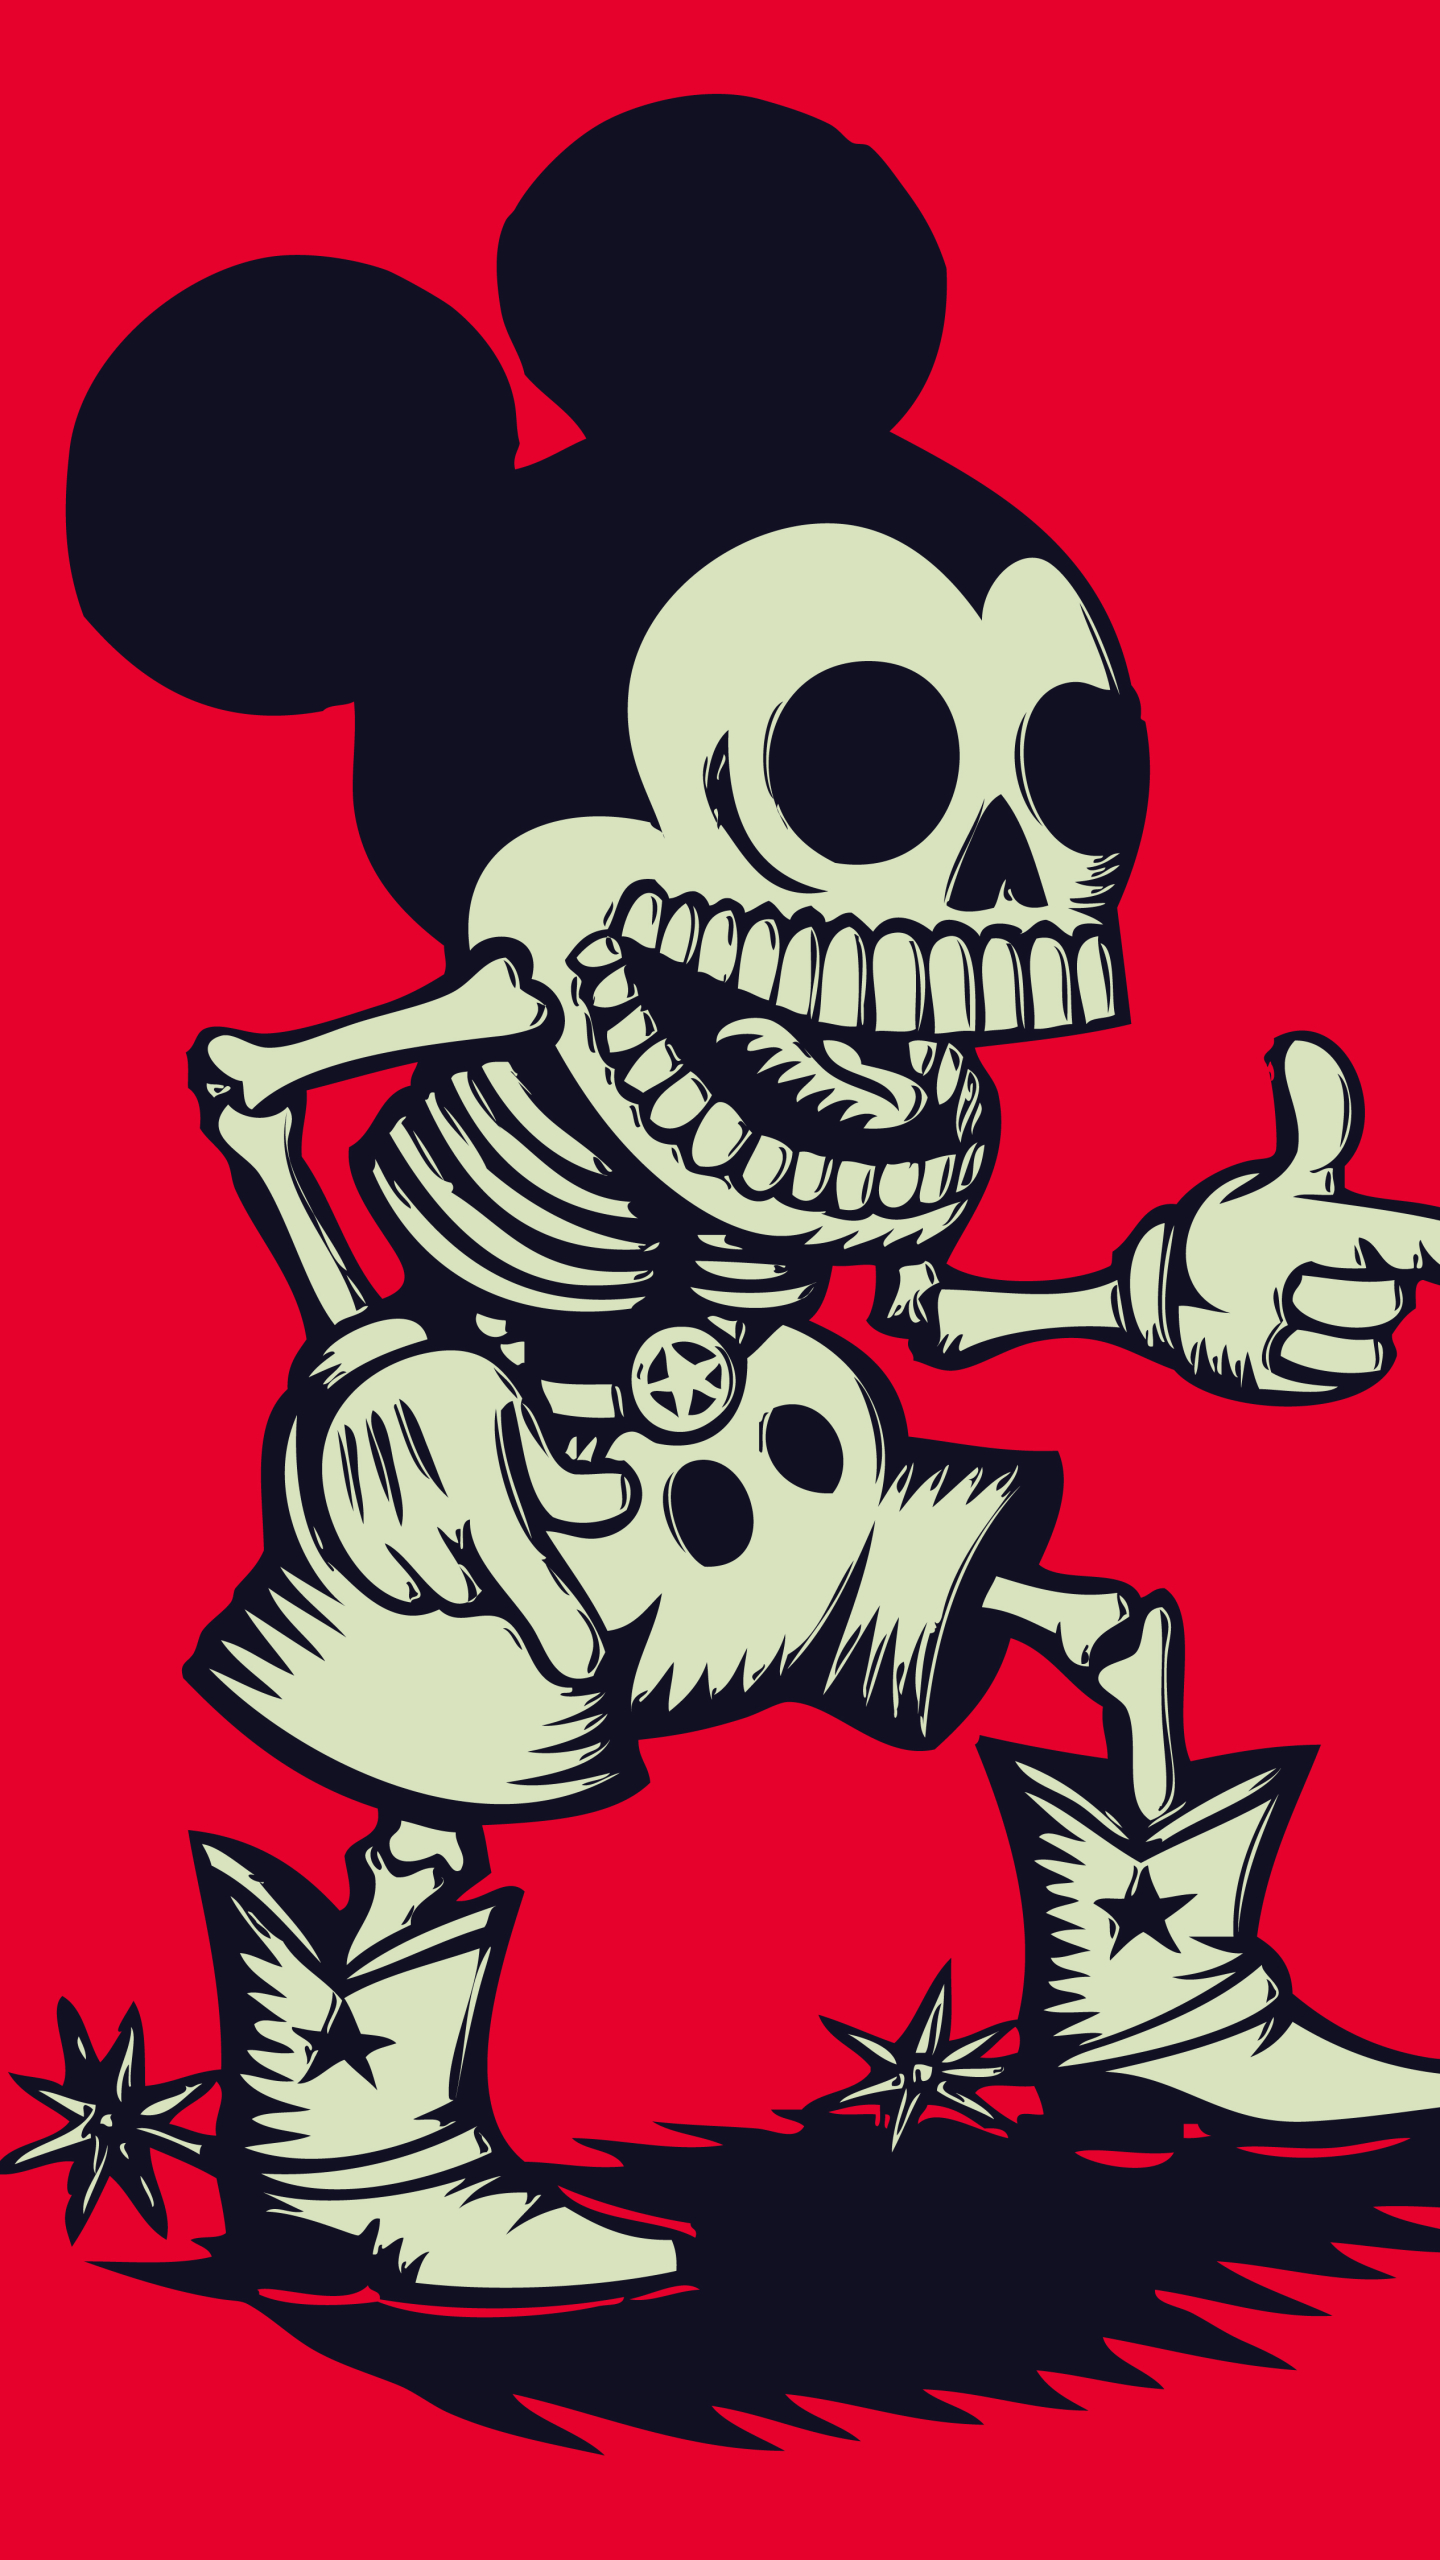 Wallpaper iphone mickey mouse - Cartoon Mickey Mouse Disney Wallpaper 366723